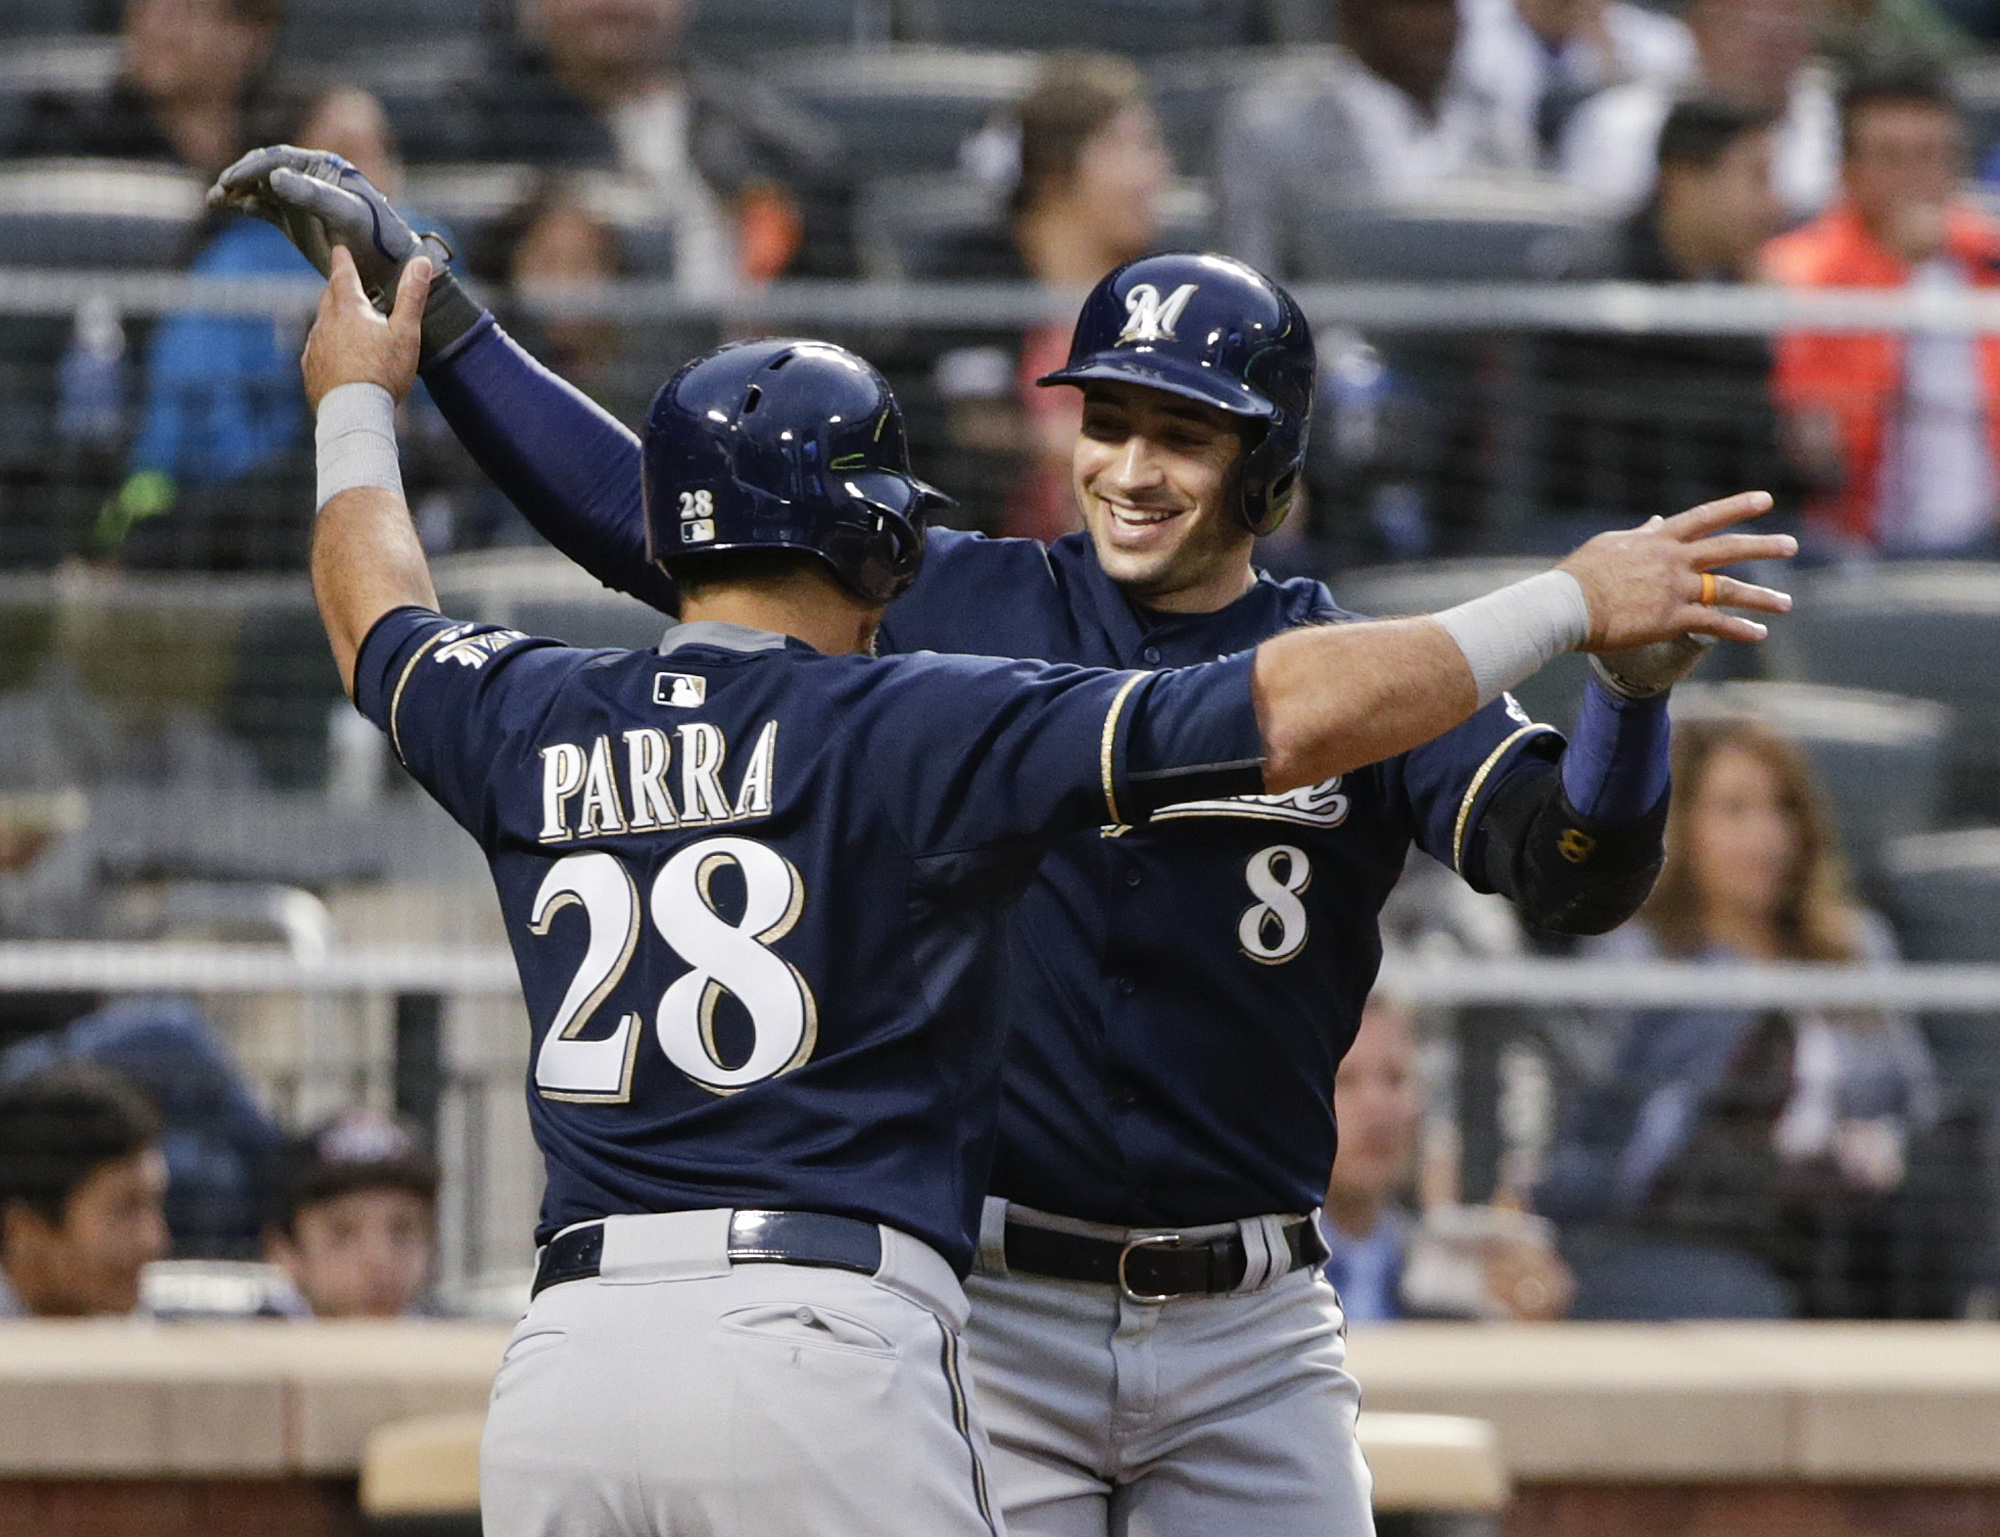 Milwaukee Brewers' Ryan Braun (8) celebrates with teammate Gerardo Parra (28) after hitting a two -un home run during the third inning of a baseball game against the New York Mets on Friday, May 15, 2015, in New York. (AP Photo/Frank Franklin II)